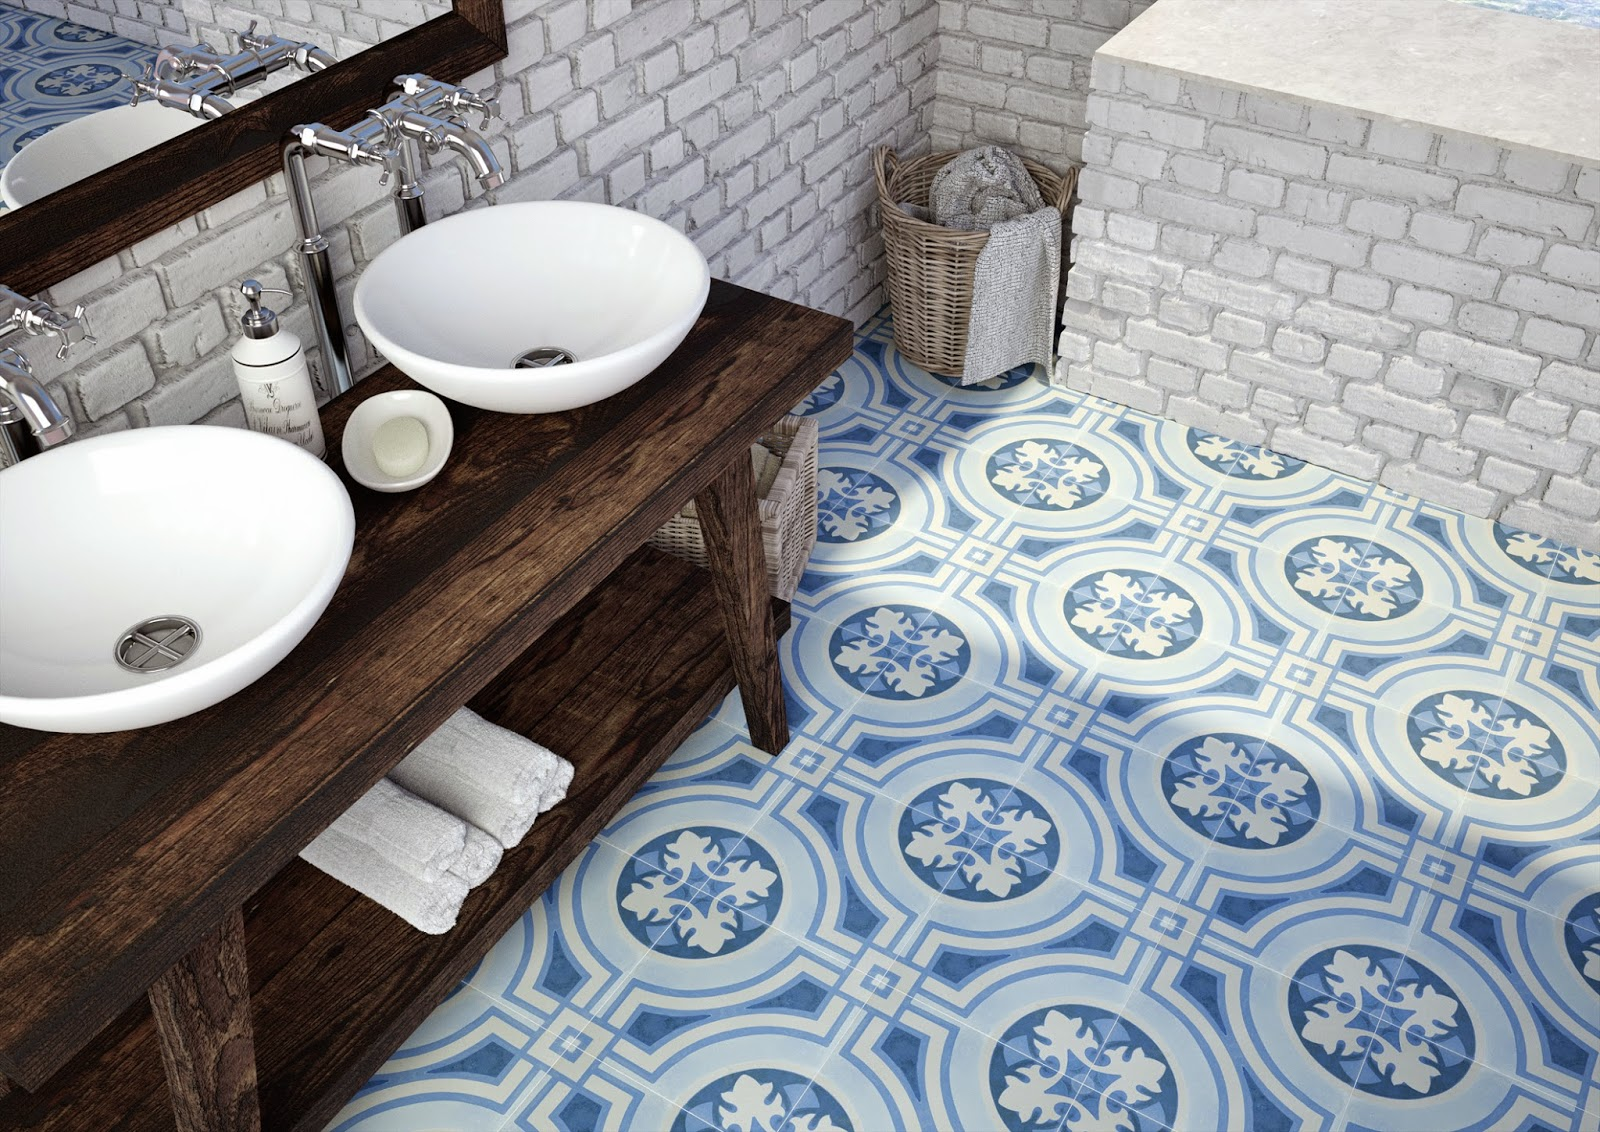 Apavisa's Hydraulic Blue pays homage to Classic Cement Tile Designs